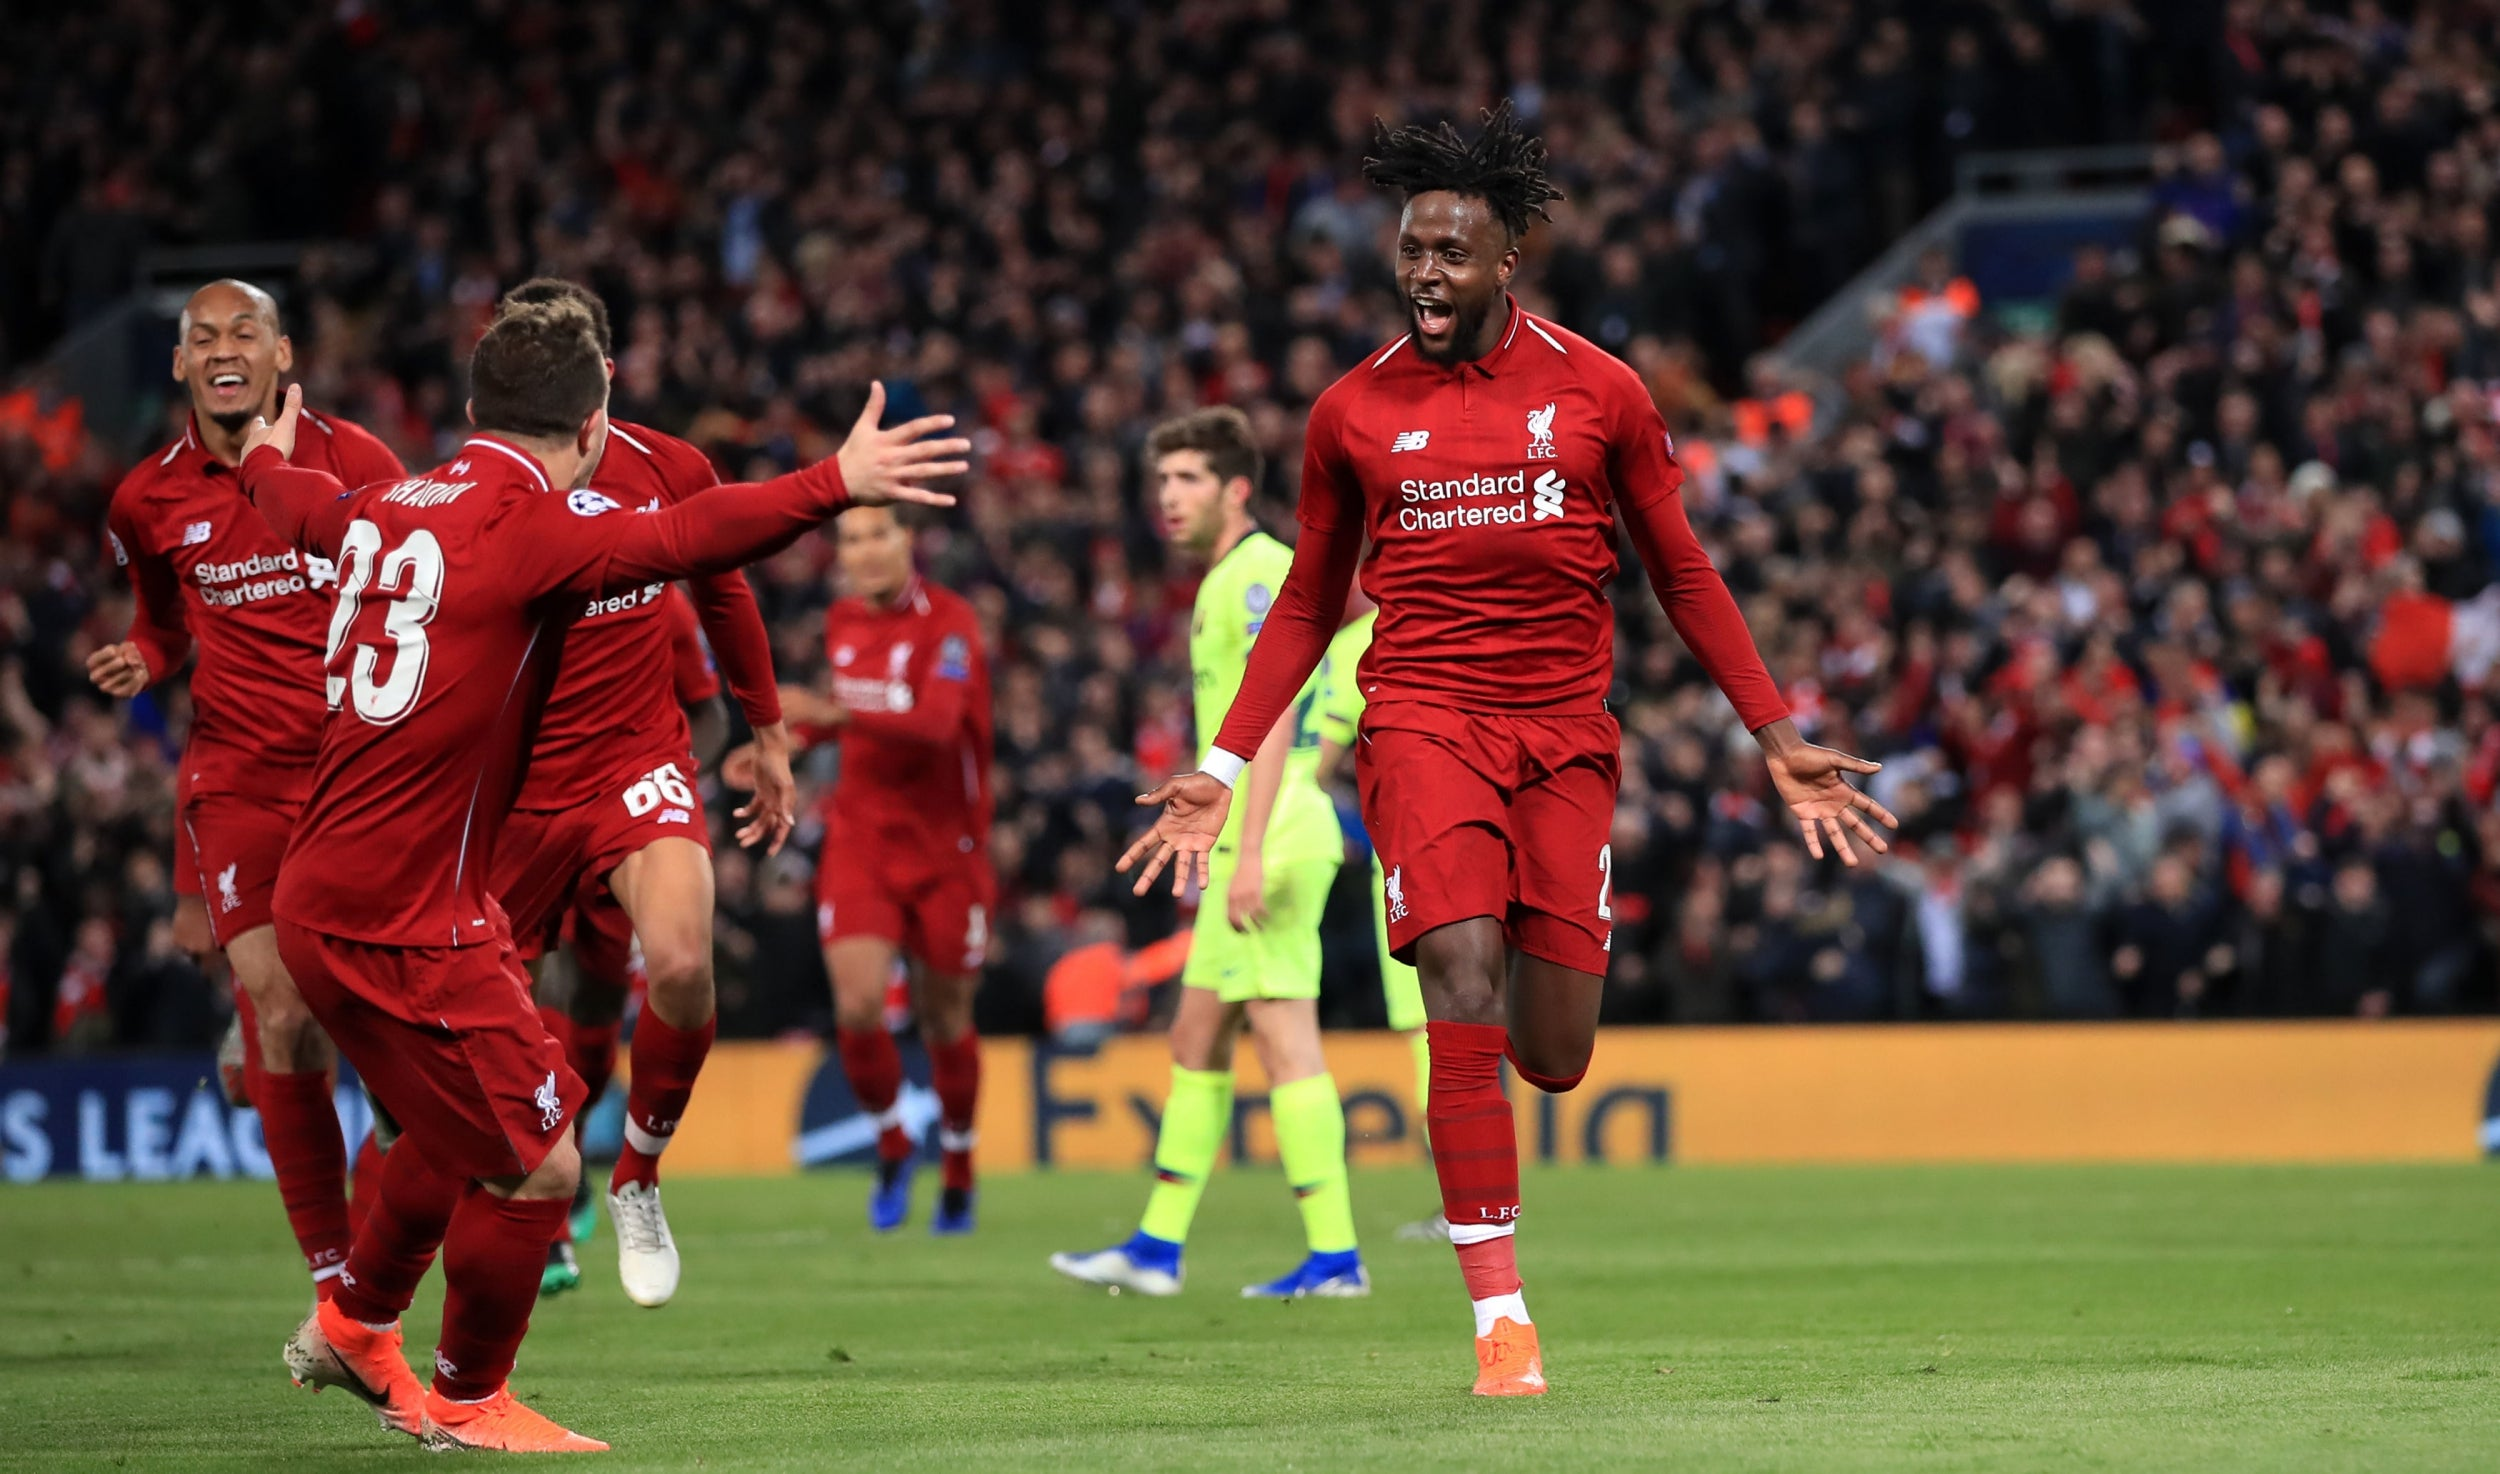 Liverpool Will Challenge For The Title Again Next Season